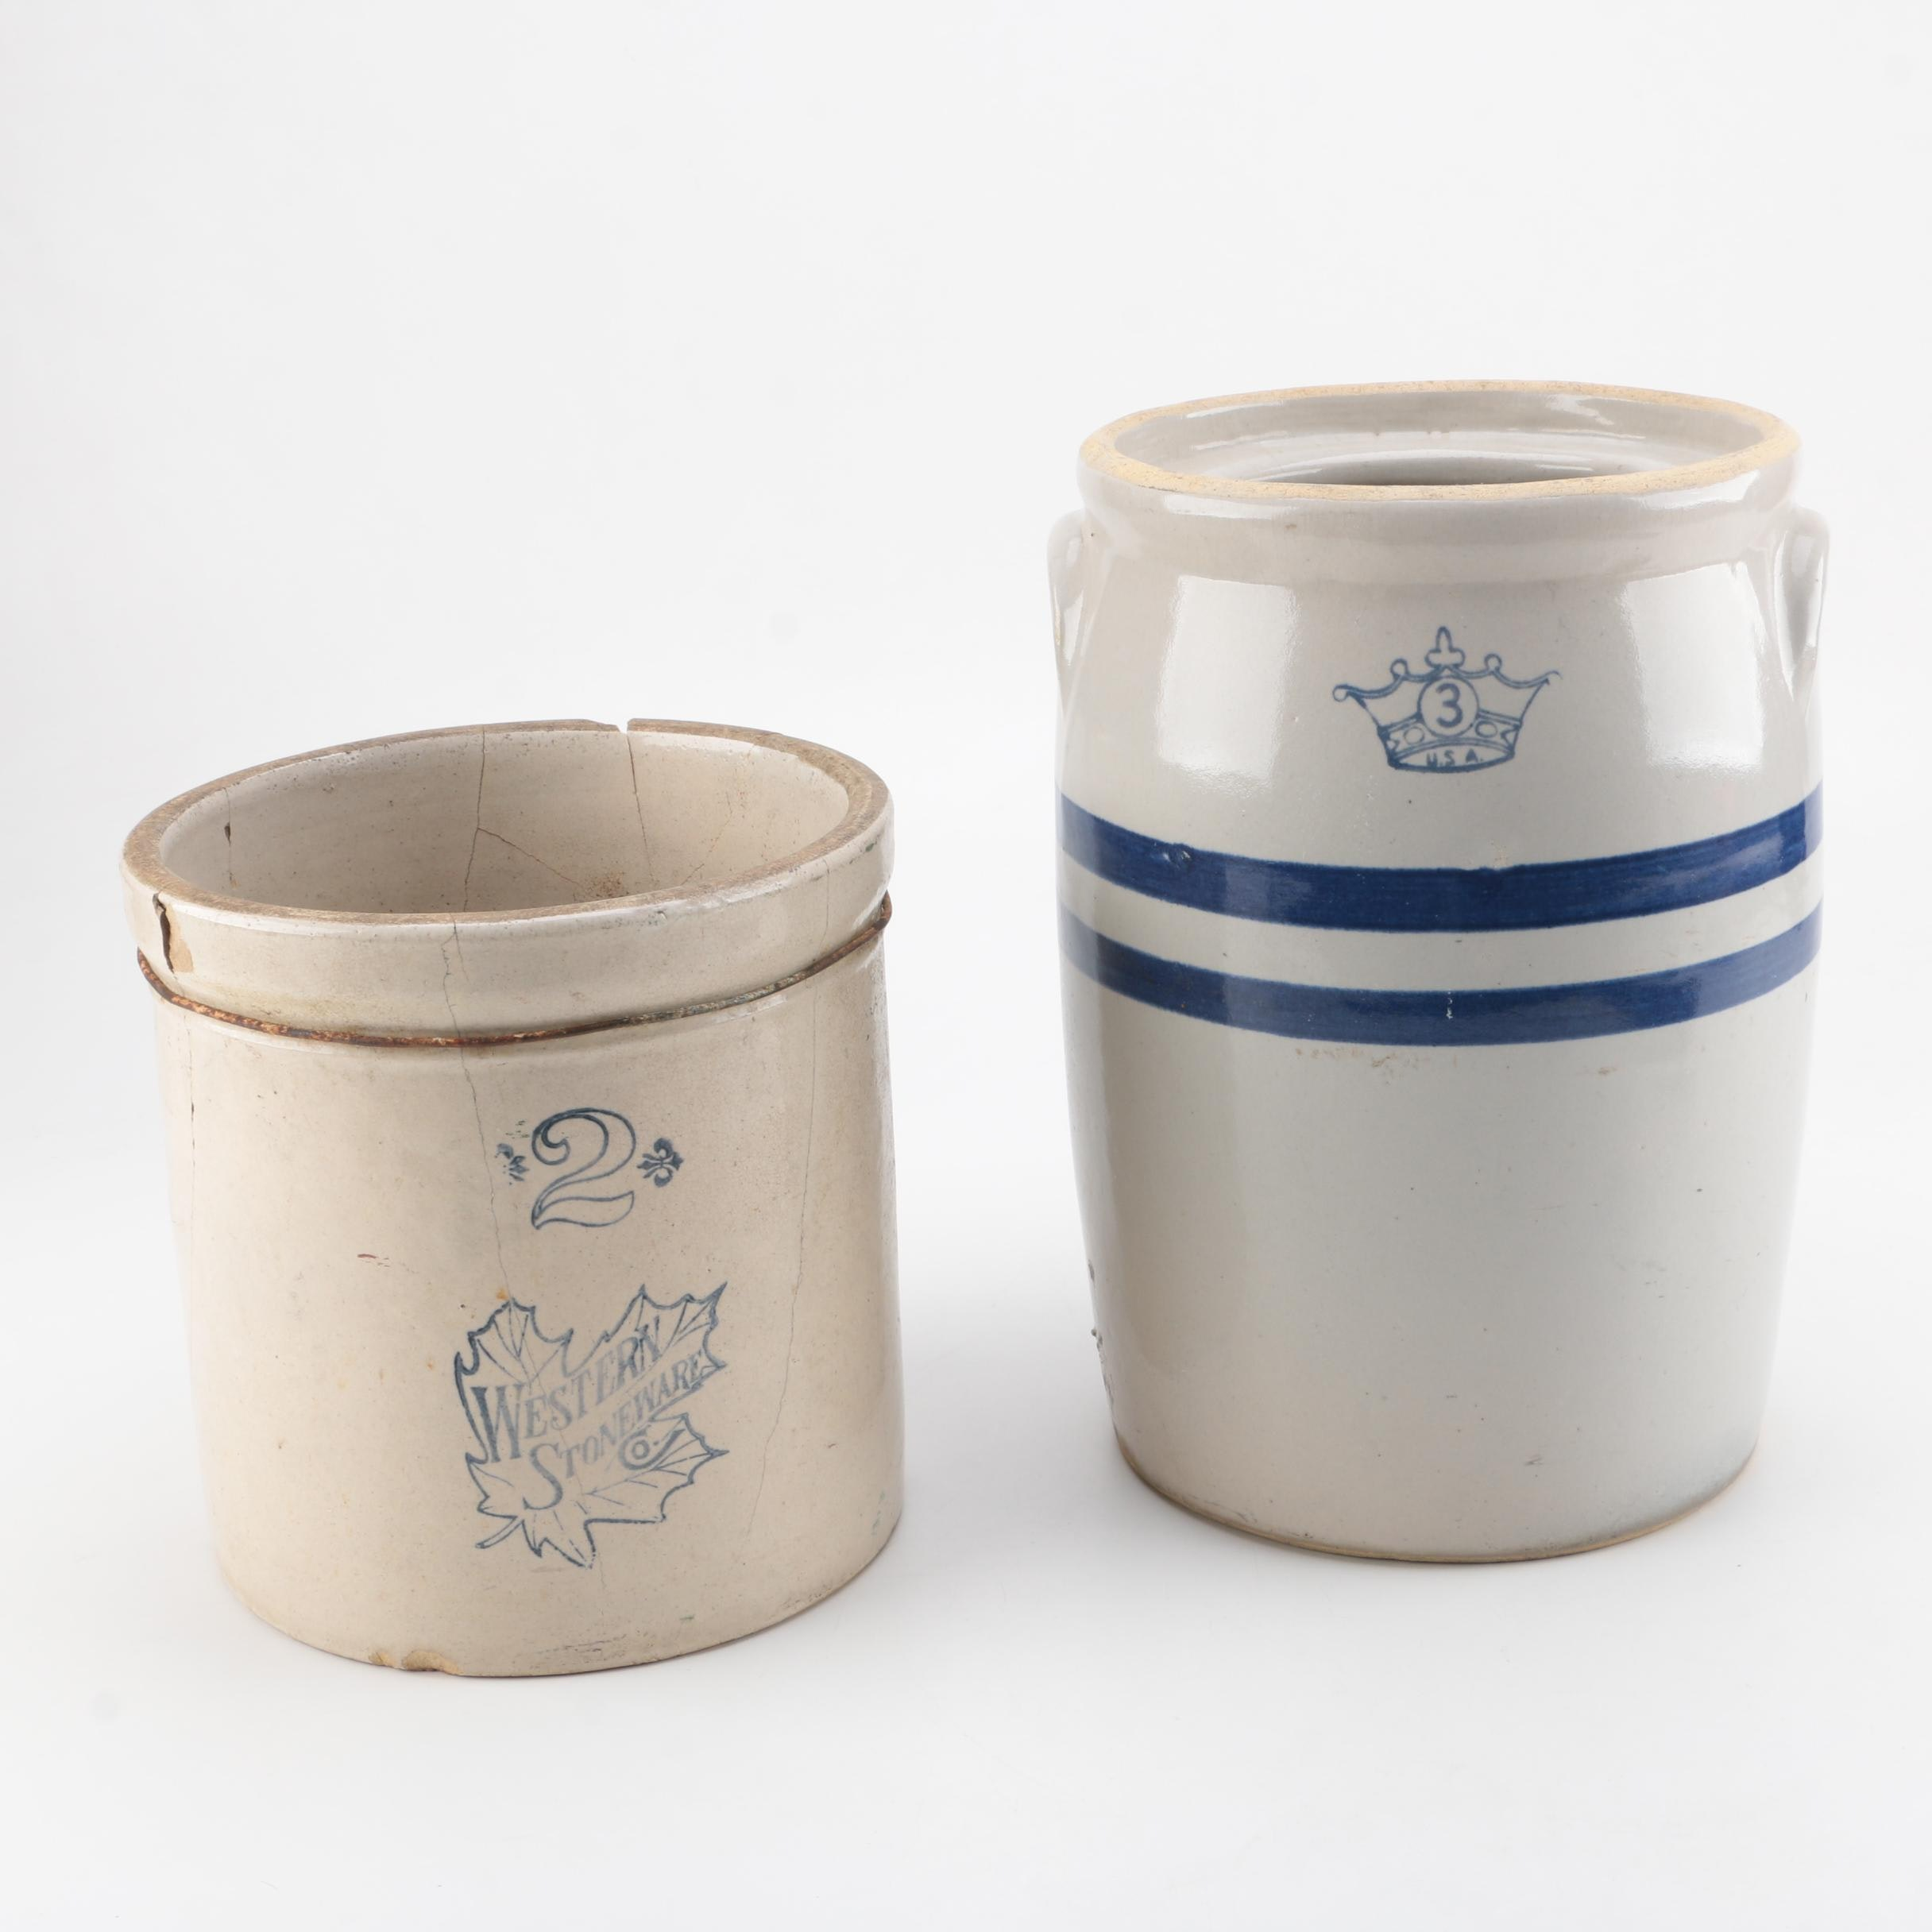 R.R.P. Co. and Western Stoneware Blue and Grey Crocks